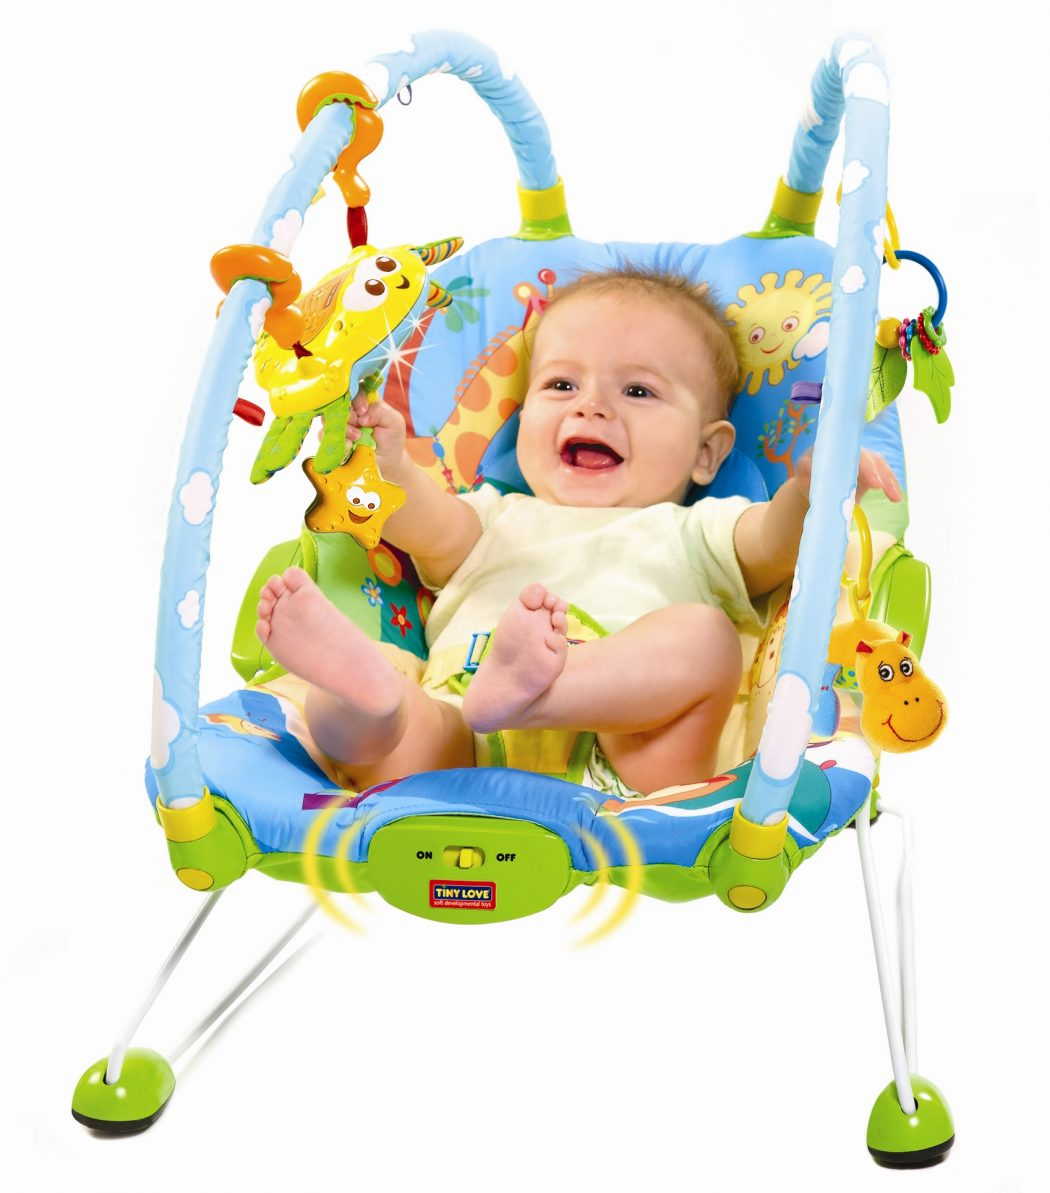 1. Very safe and comfortable: The Fisher-Price Rainforest baby jumper comes highly recommended as one of the best baby jumpers on sale today in regards to safety and comfort. The jumper has been built to withstand a maximum load of kg.